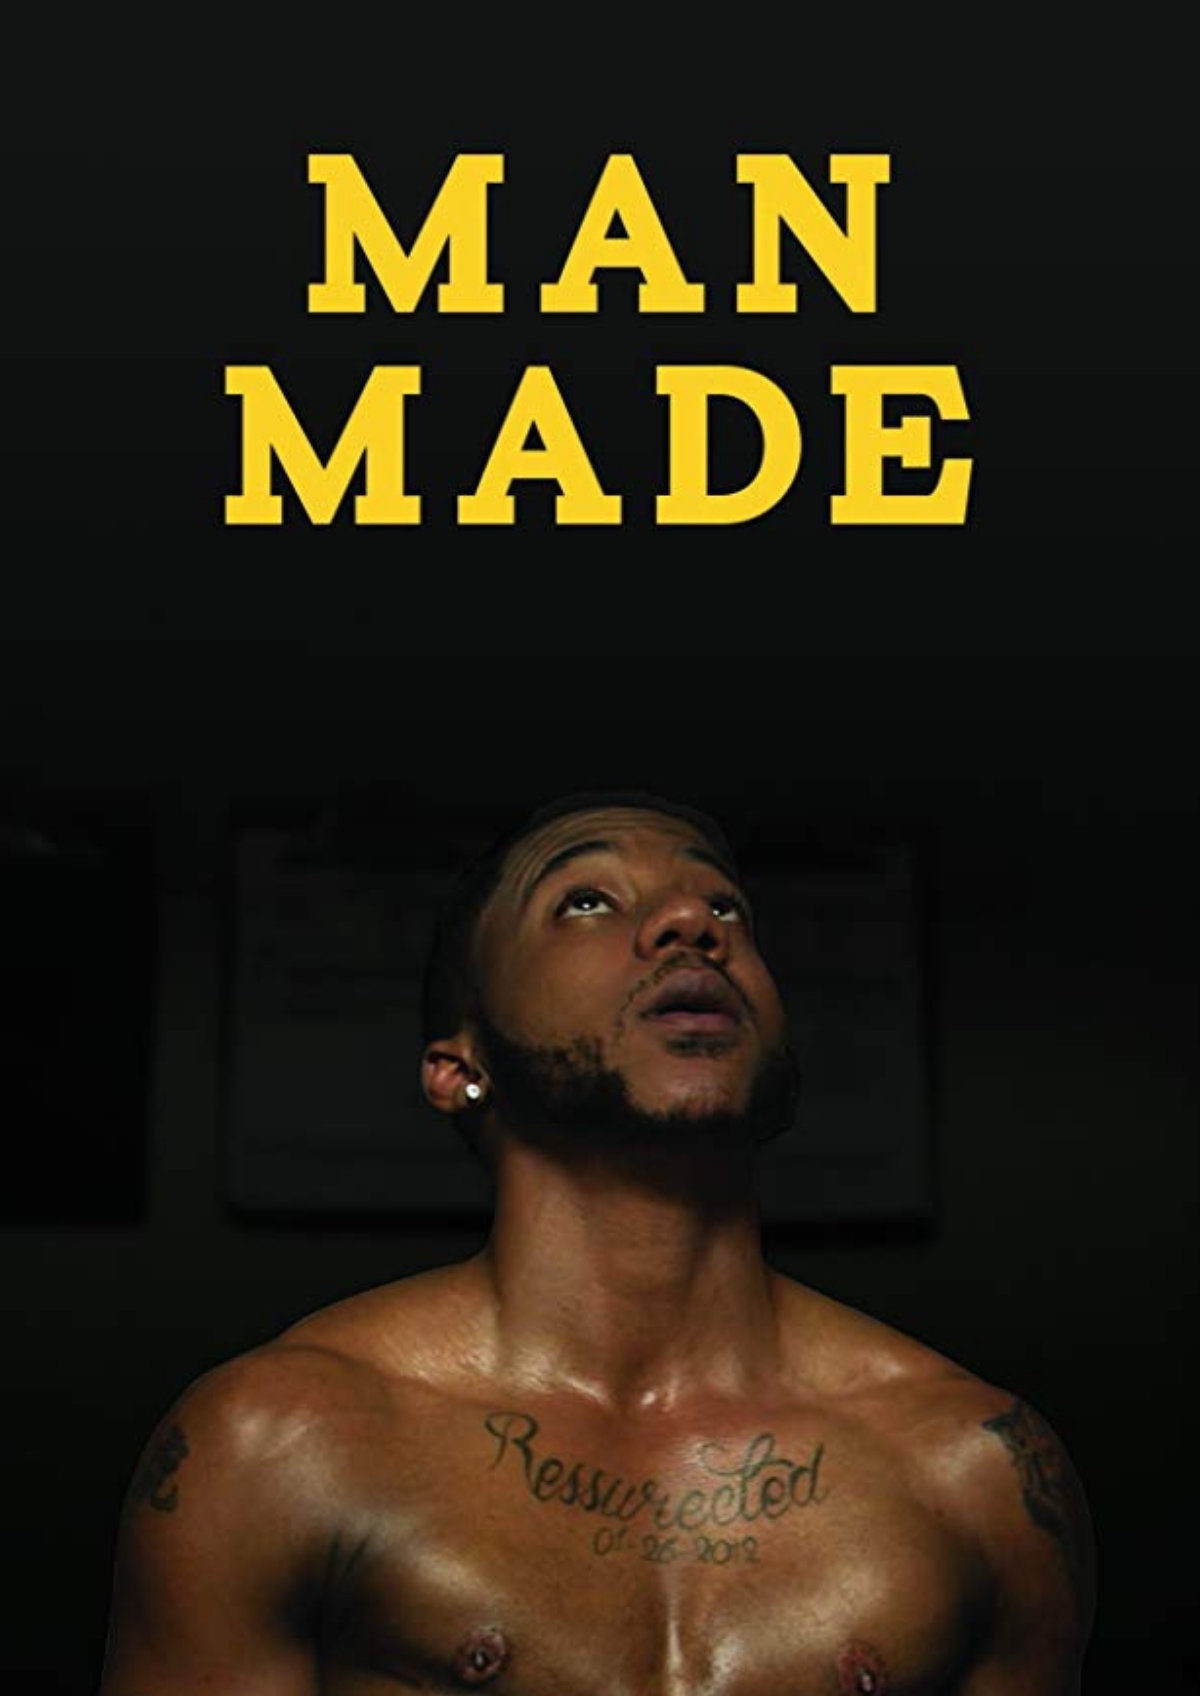 'Man Made' movie poster